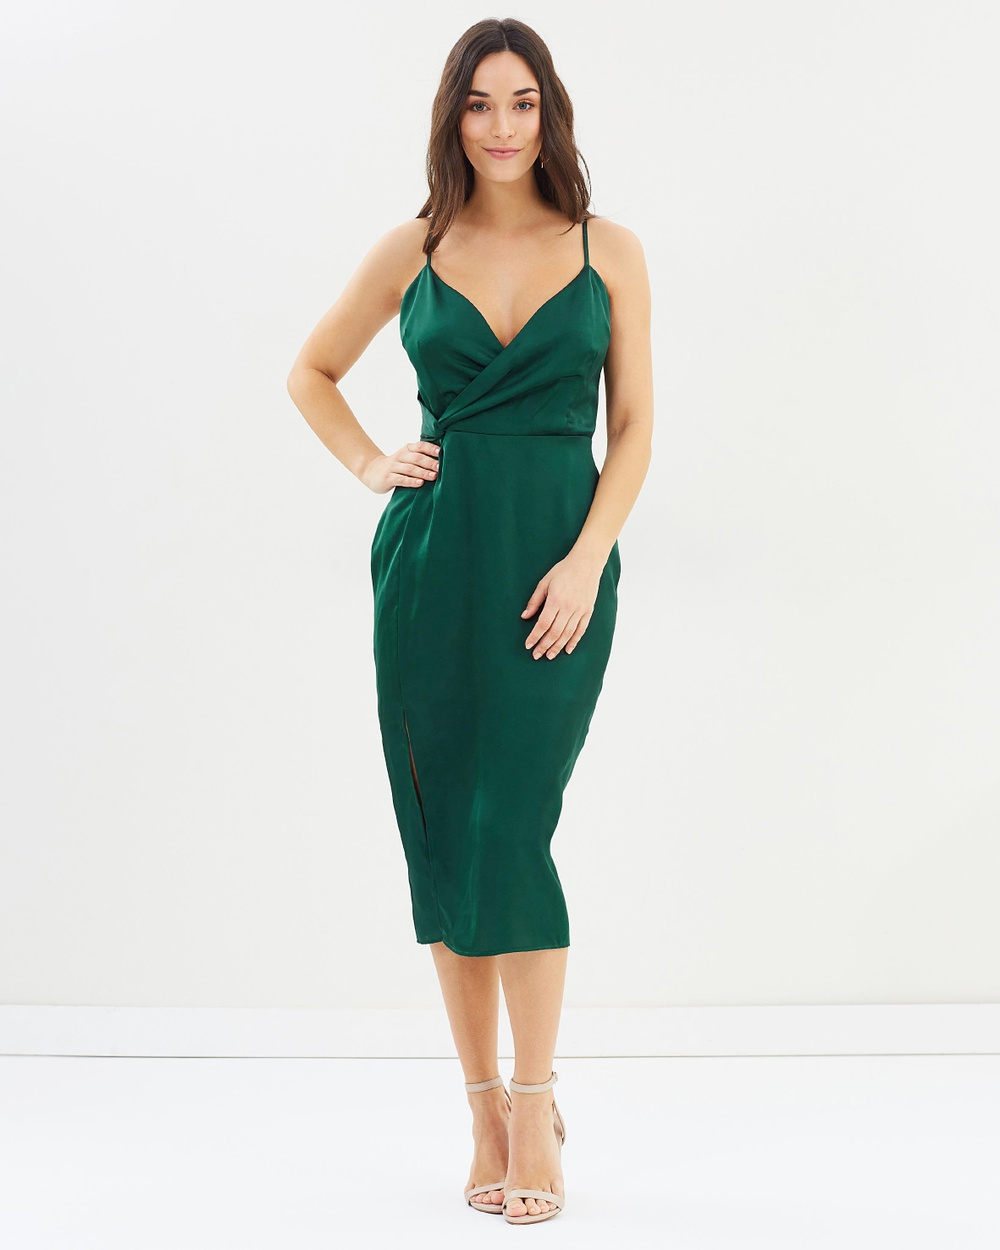 Cooper St Lana Side Twist Midi Dress Bridesmaid Dresses Evergreen Lana Side Twist Midi Dress